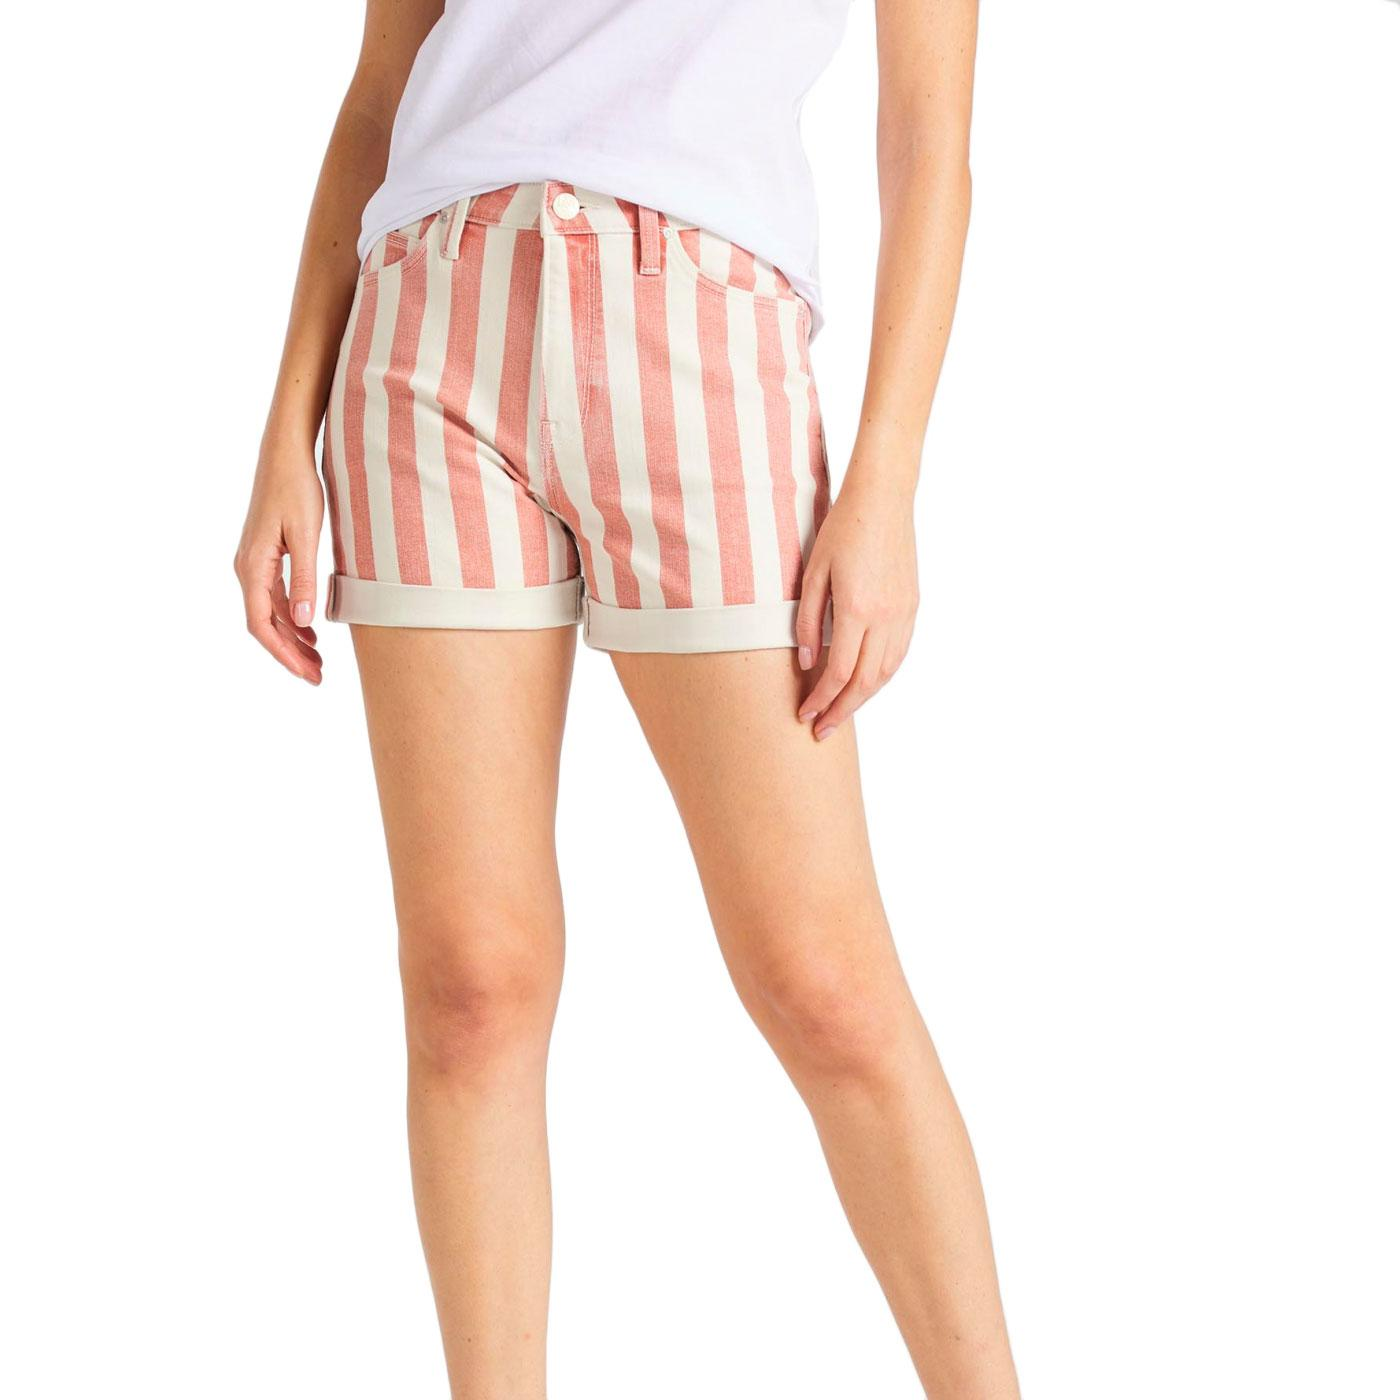 LEE JEANS Retro 90s Relaxed Stripe Mom Shorts RED